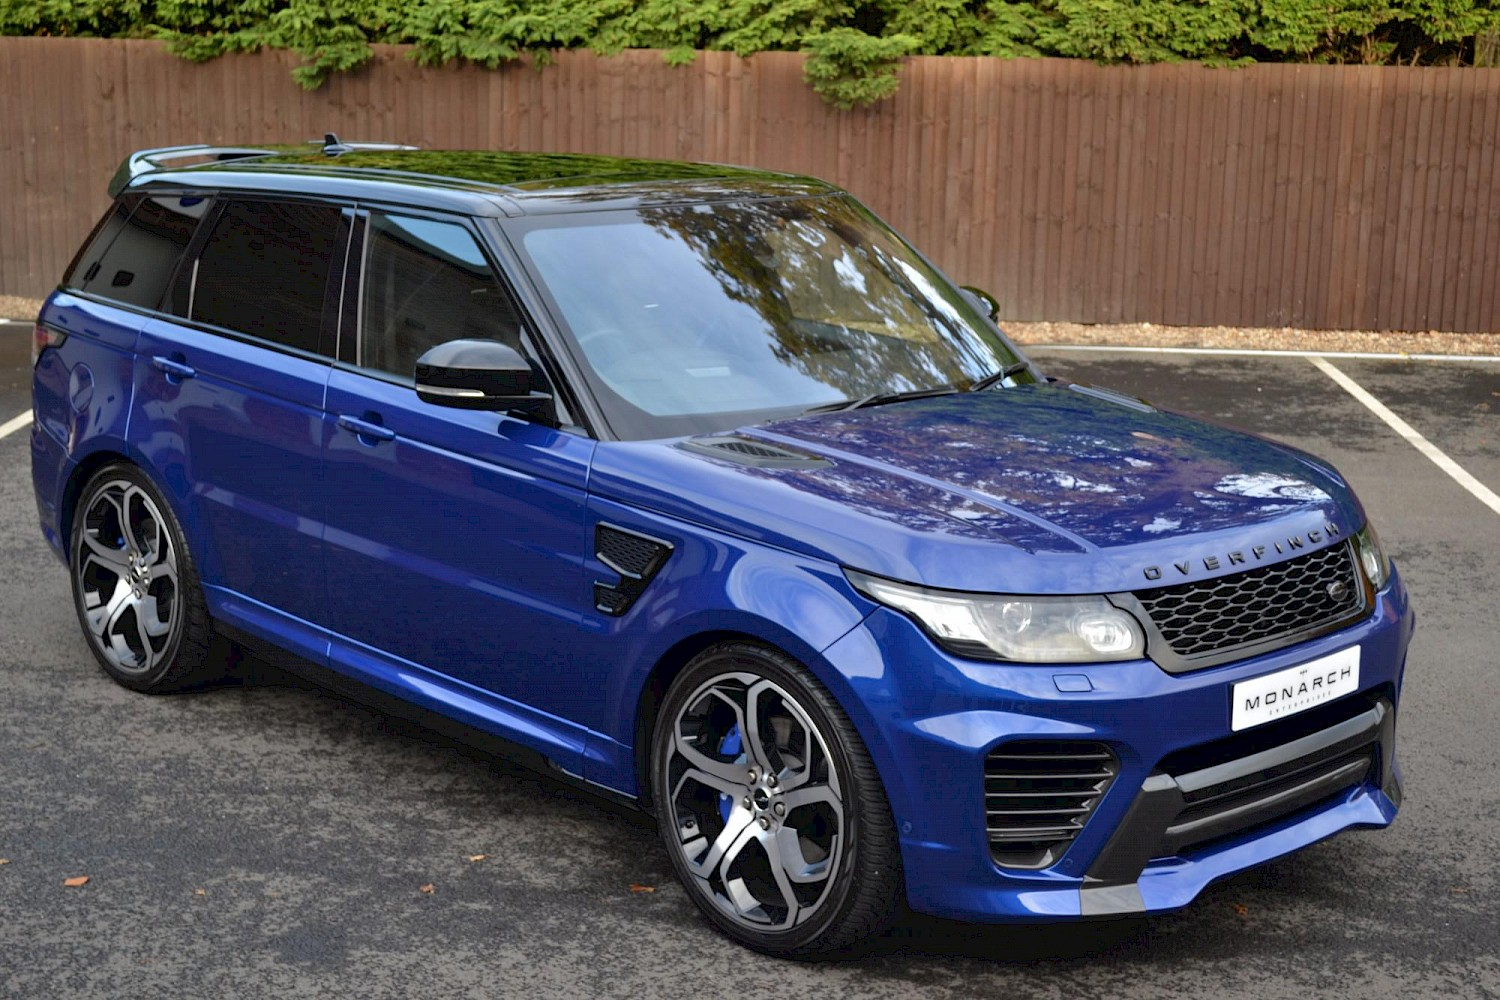 2015 15 Land Rover Range Rover 5 0 Svr Overfinch Cars Monarch